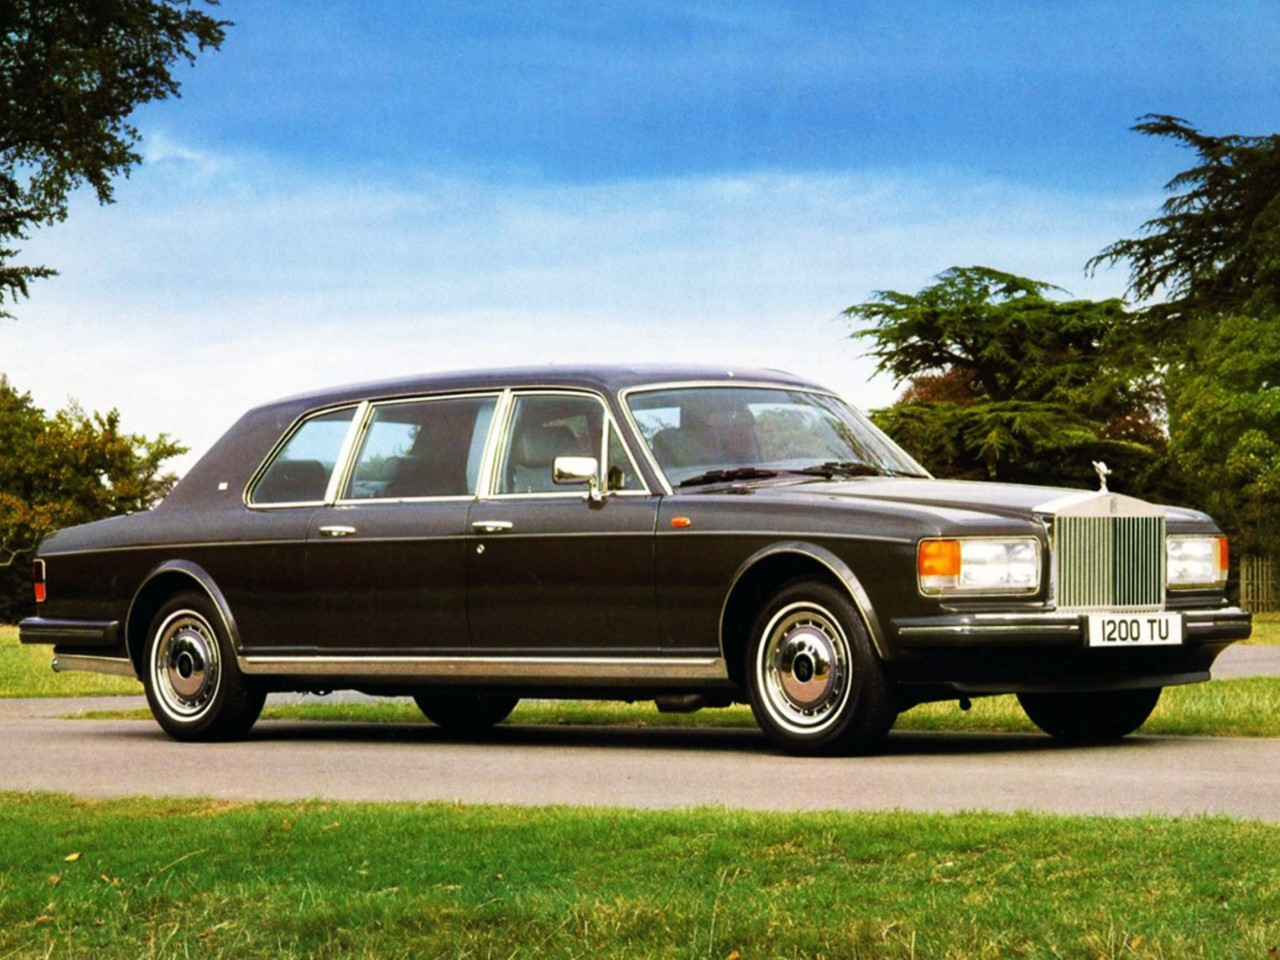 The rolls royce park ward limousine and the rolls royce silver spur park ward limousines are elegant hand built motorcars that not only offer a 24 extended